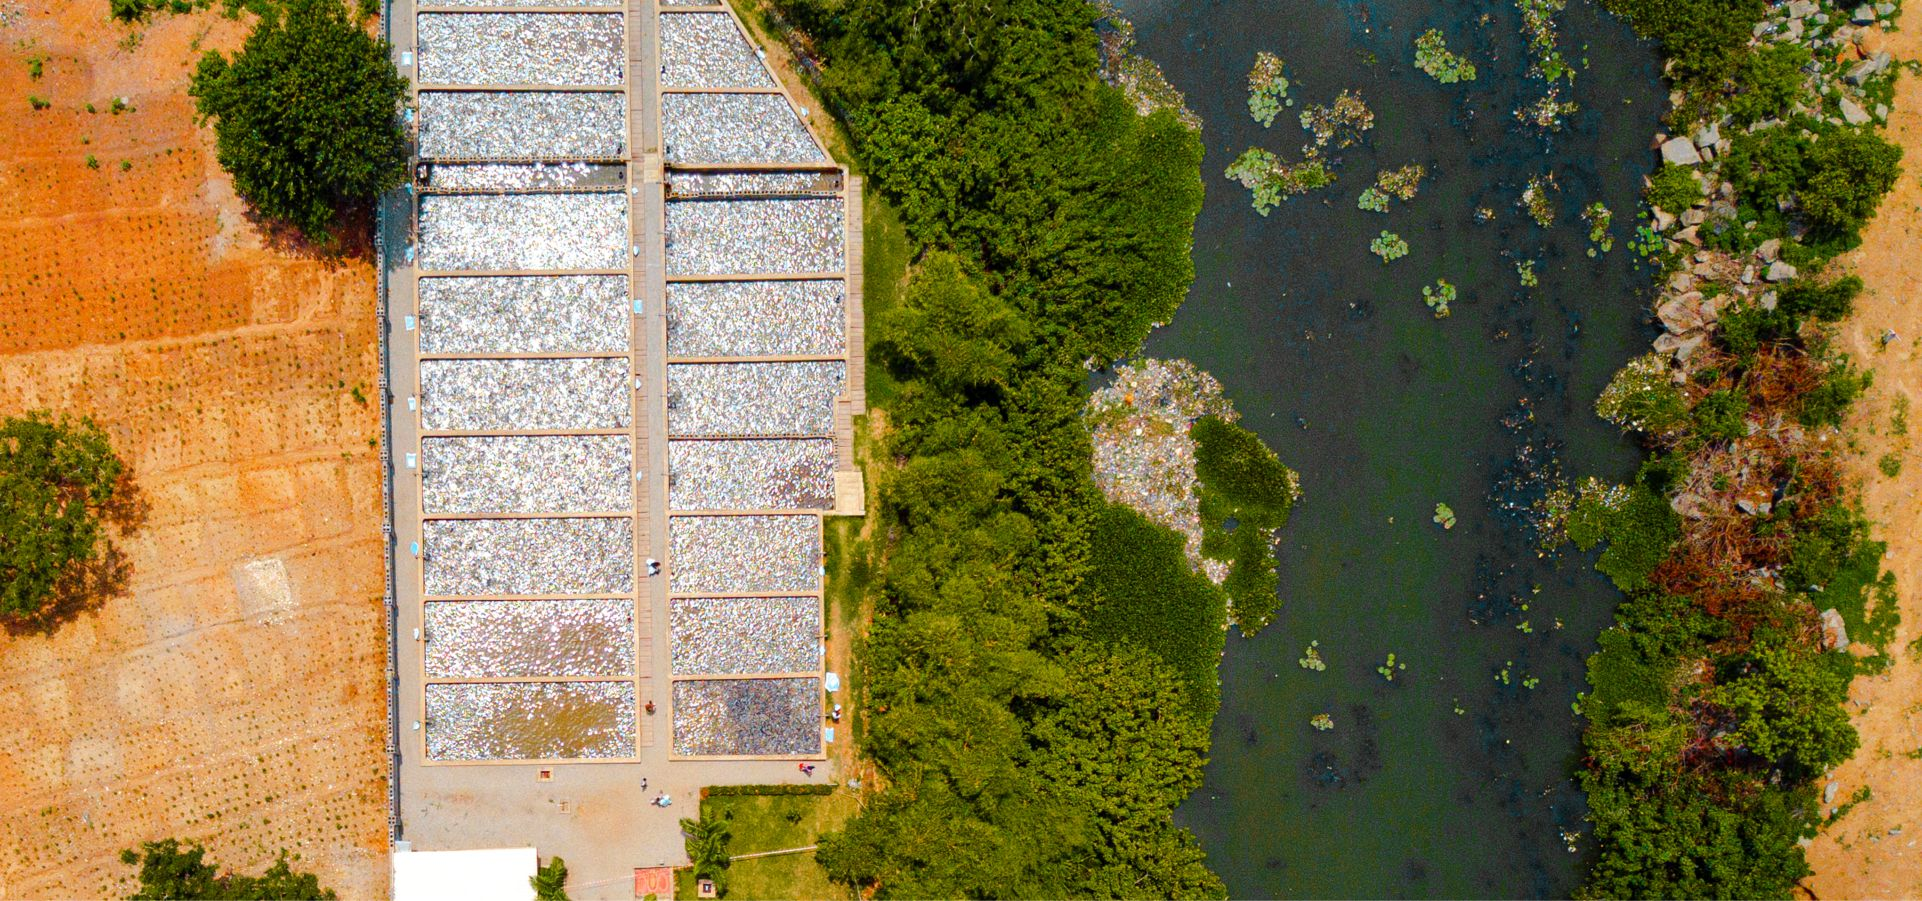 How to start a fish farm in Nigeria